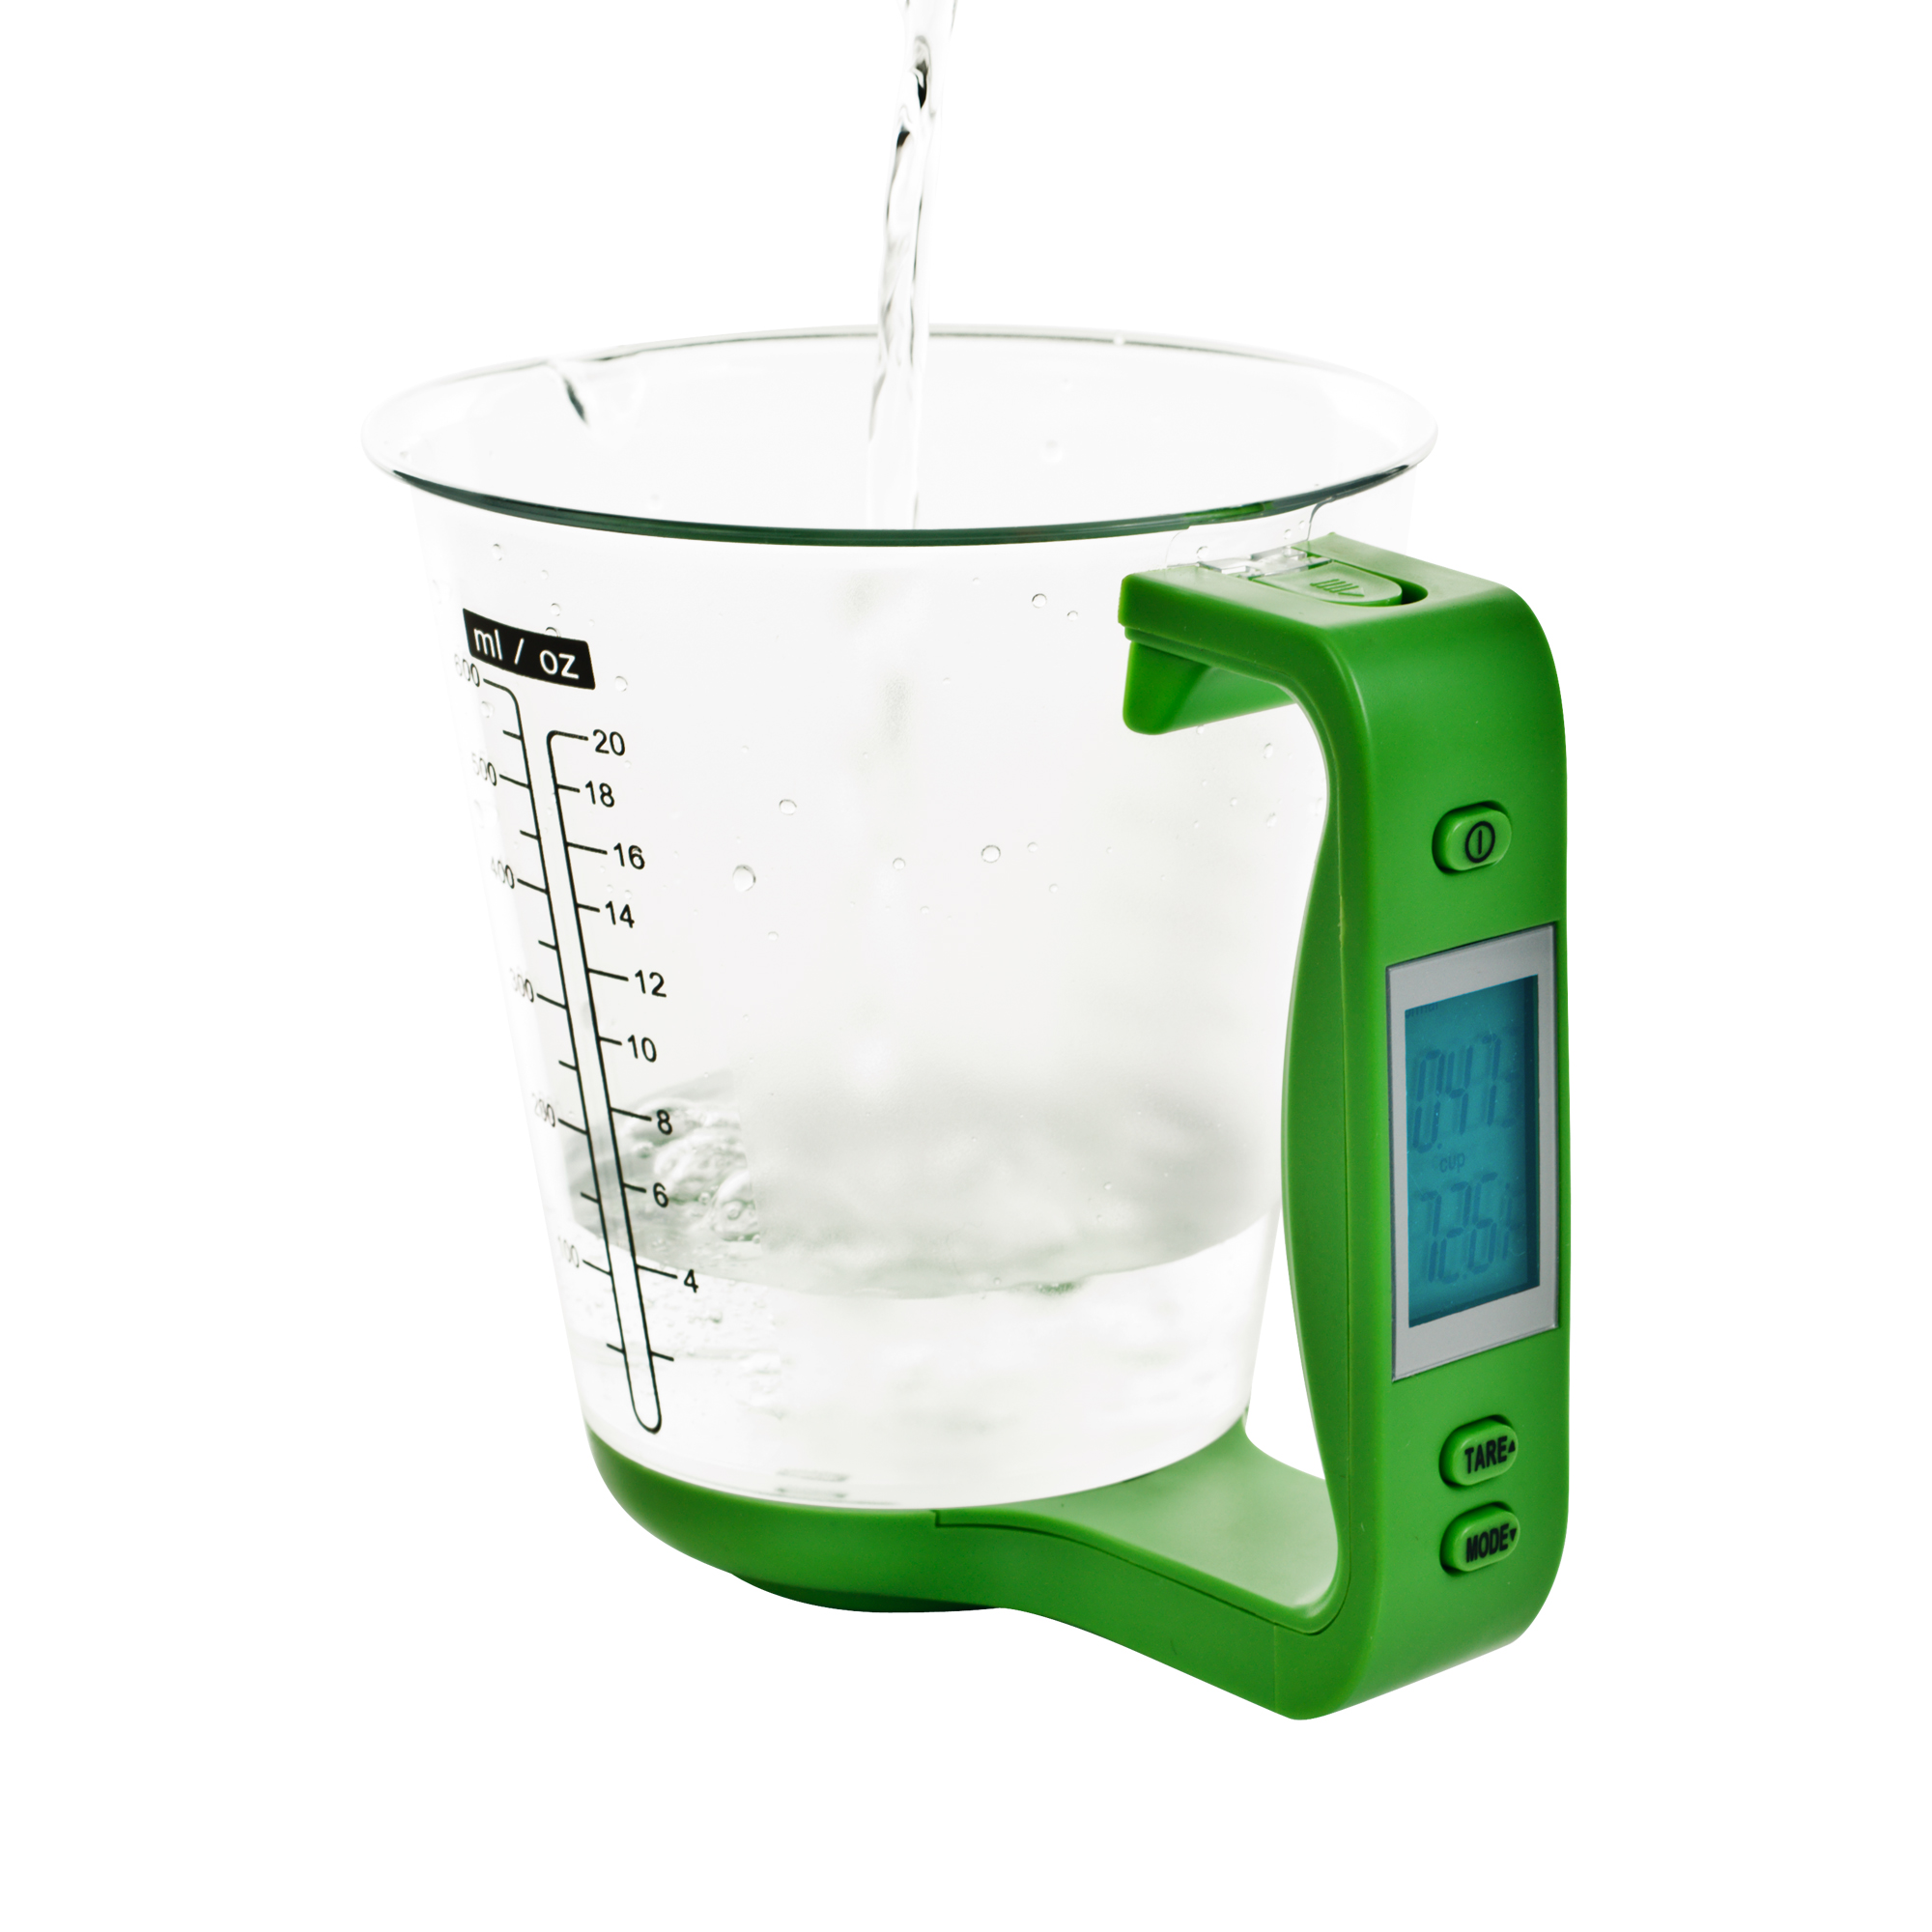 Chef Buddy Digital Detachable Measuring Cup Scale 5066